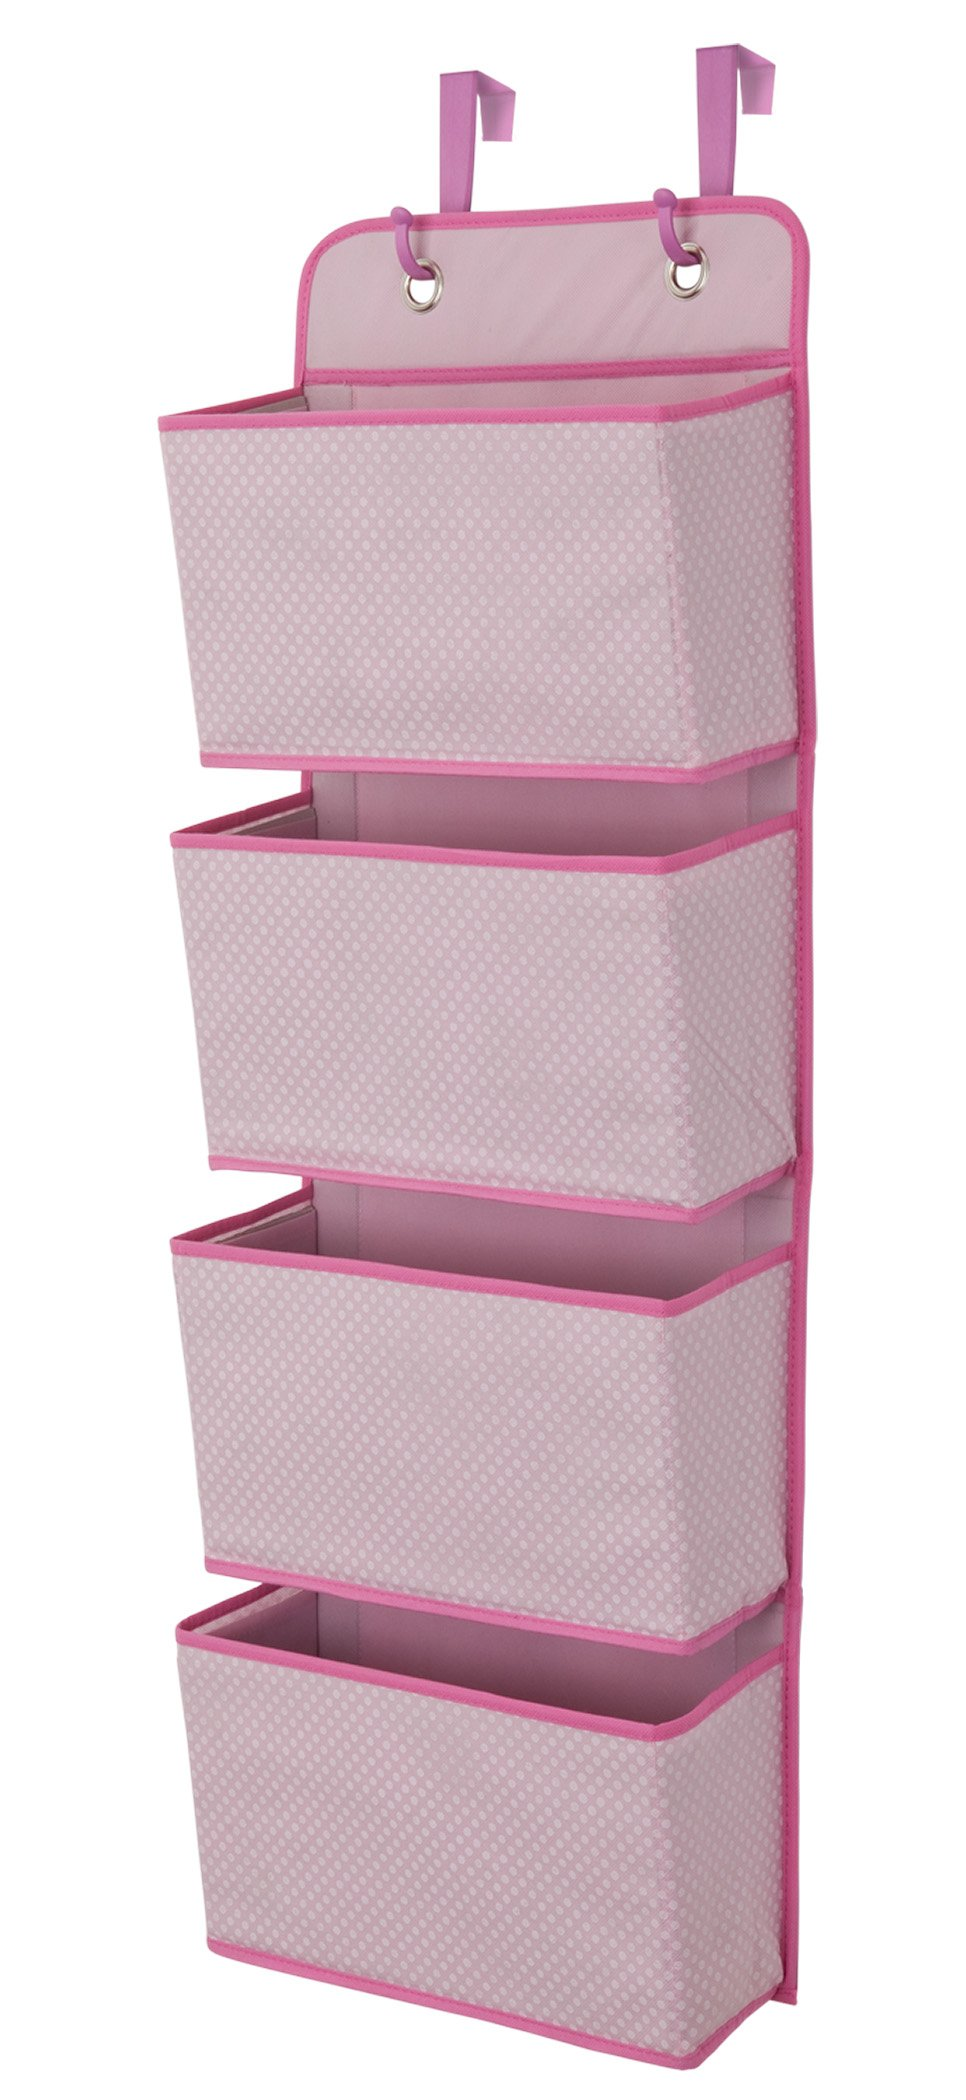 Delta Children 4 Pocket Hanging Wall Organizer, Barely Pink